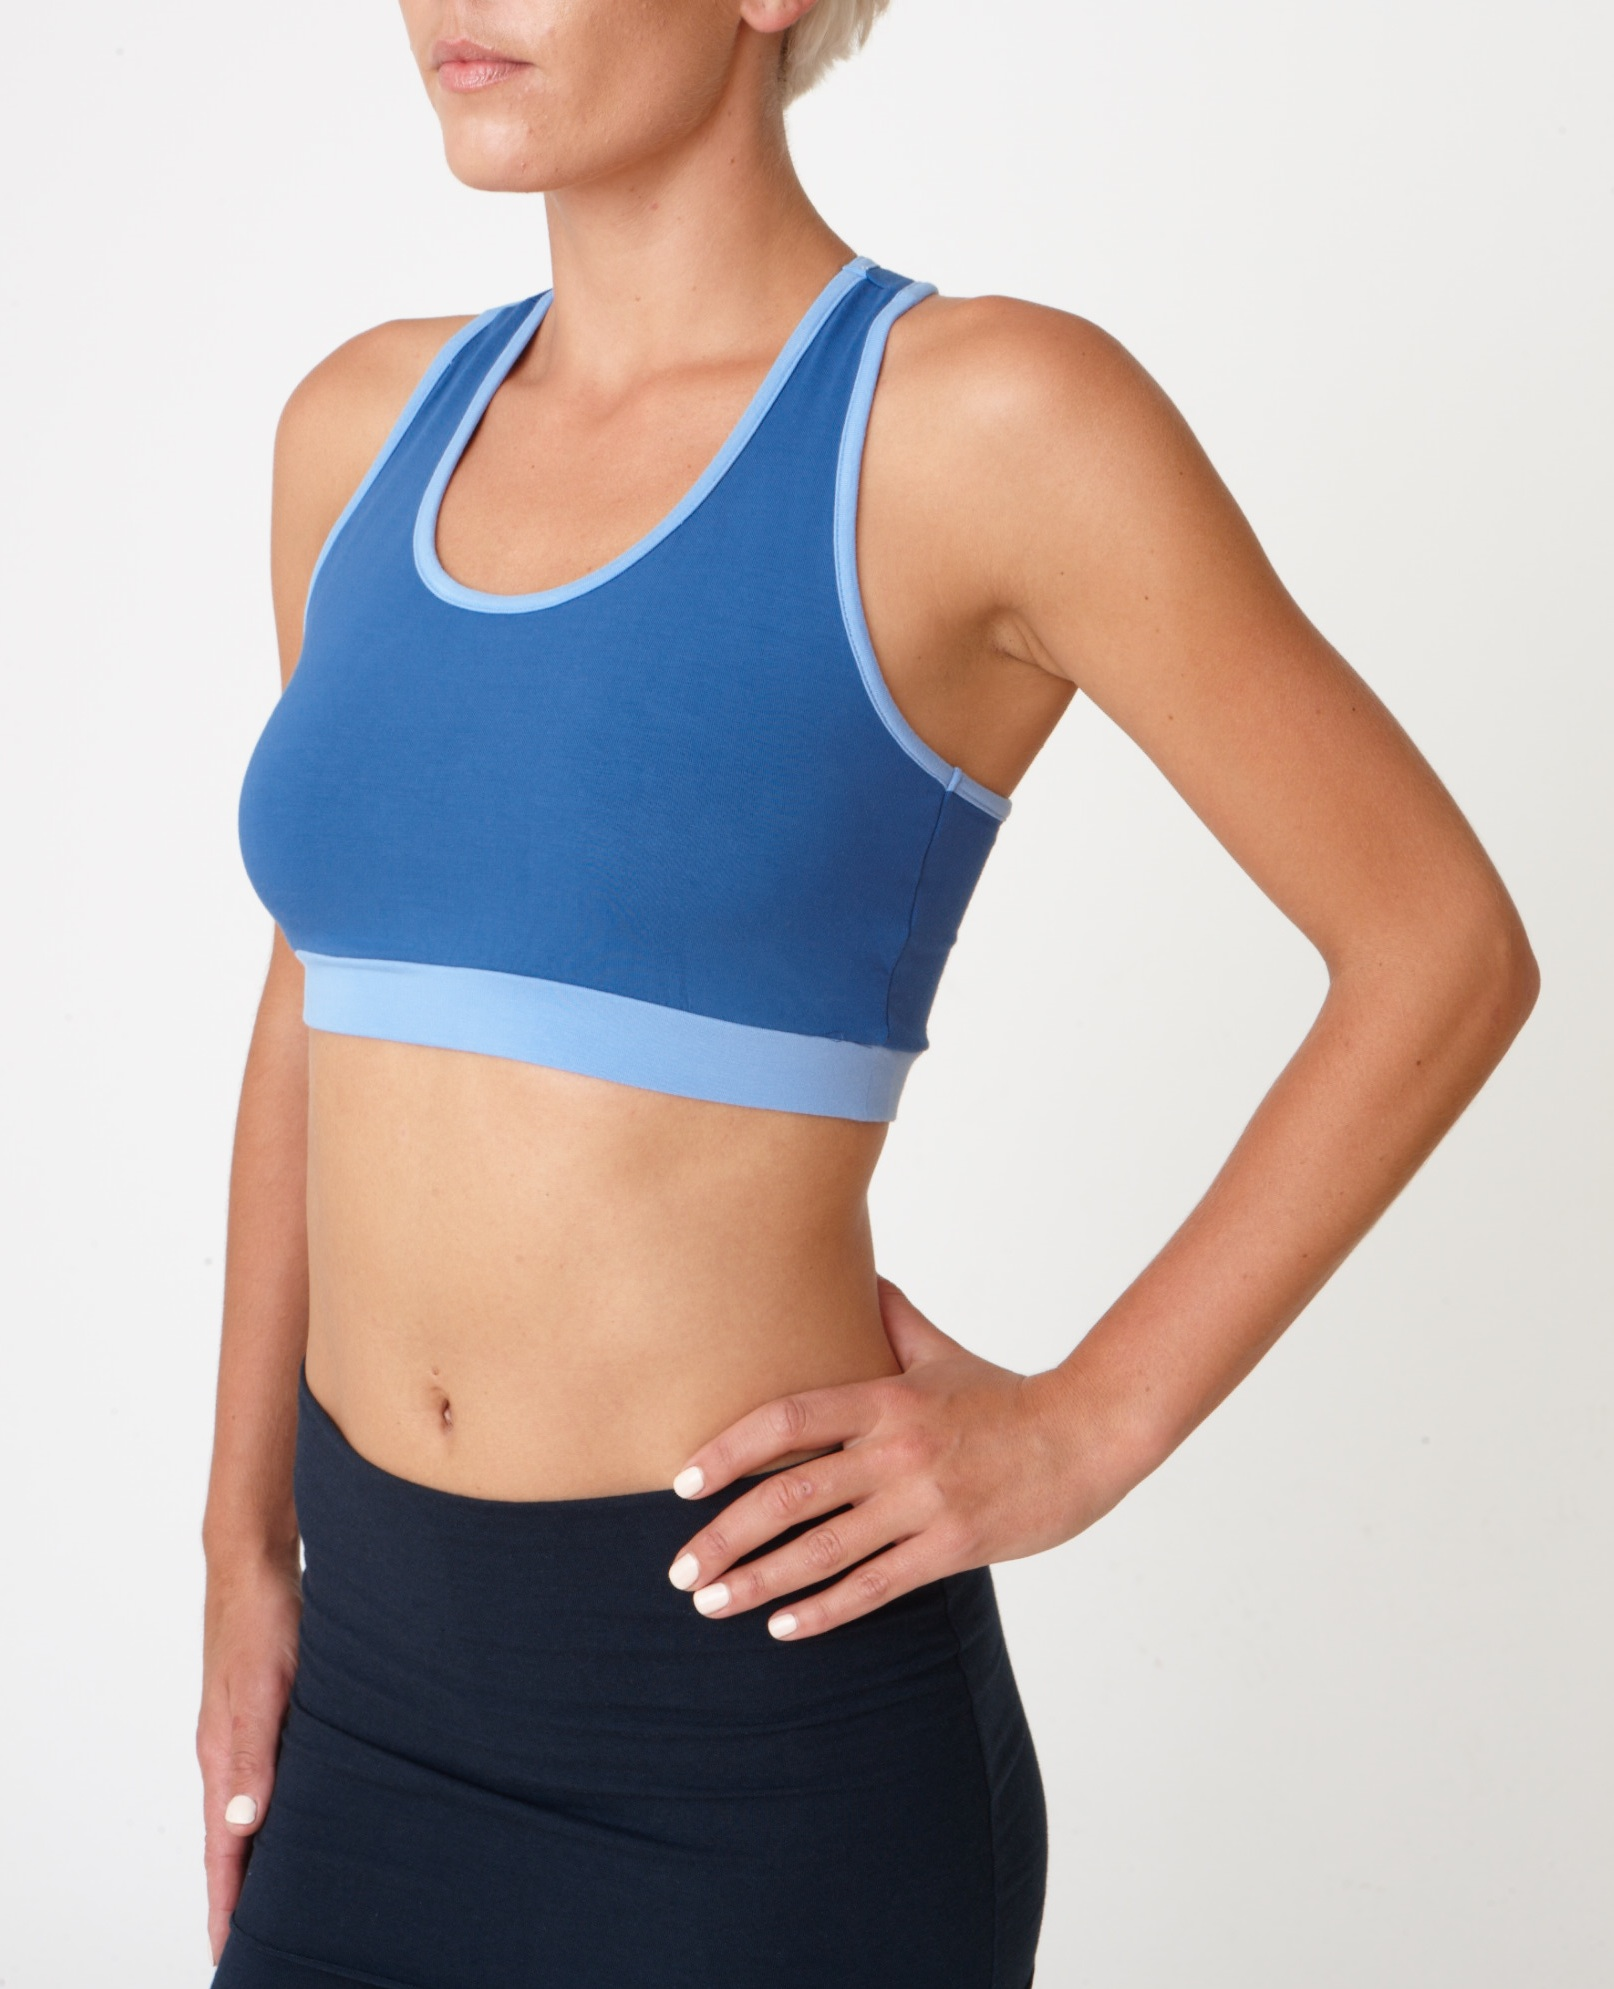 Asquith Balance Bra Yoga top denim with sky blue